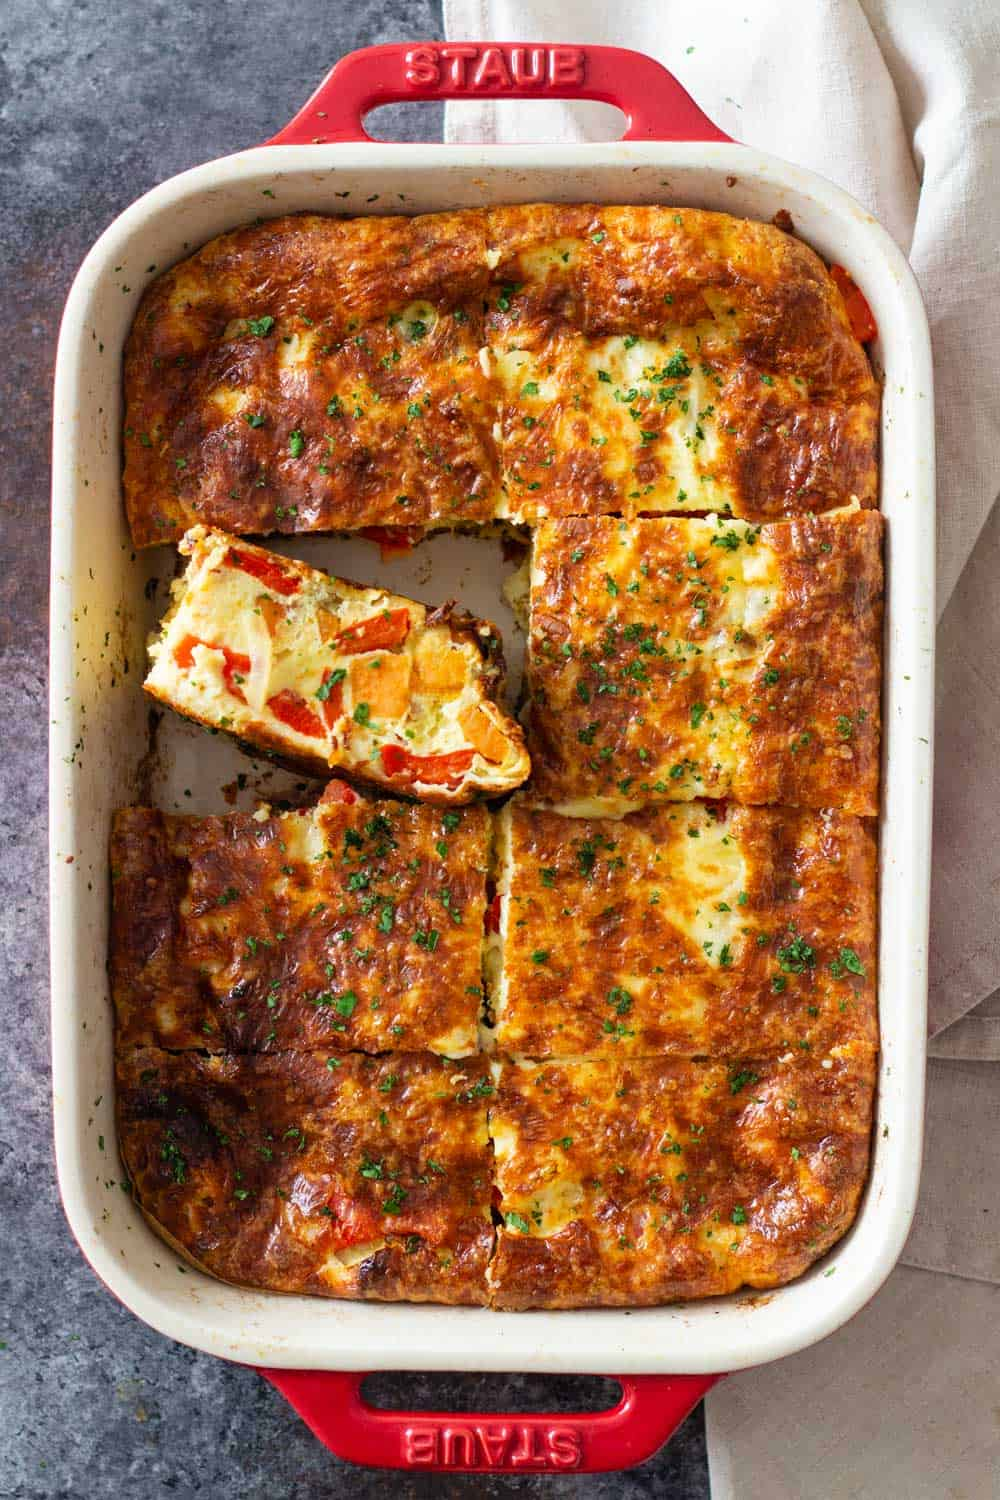 Sweet potato breakfast casserole in a red baking dish